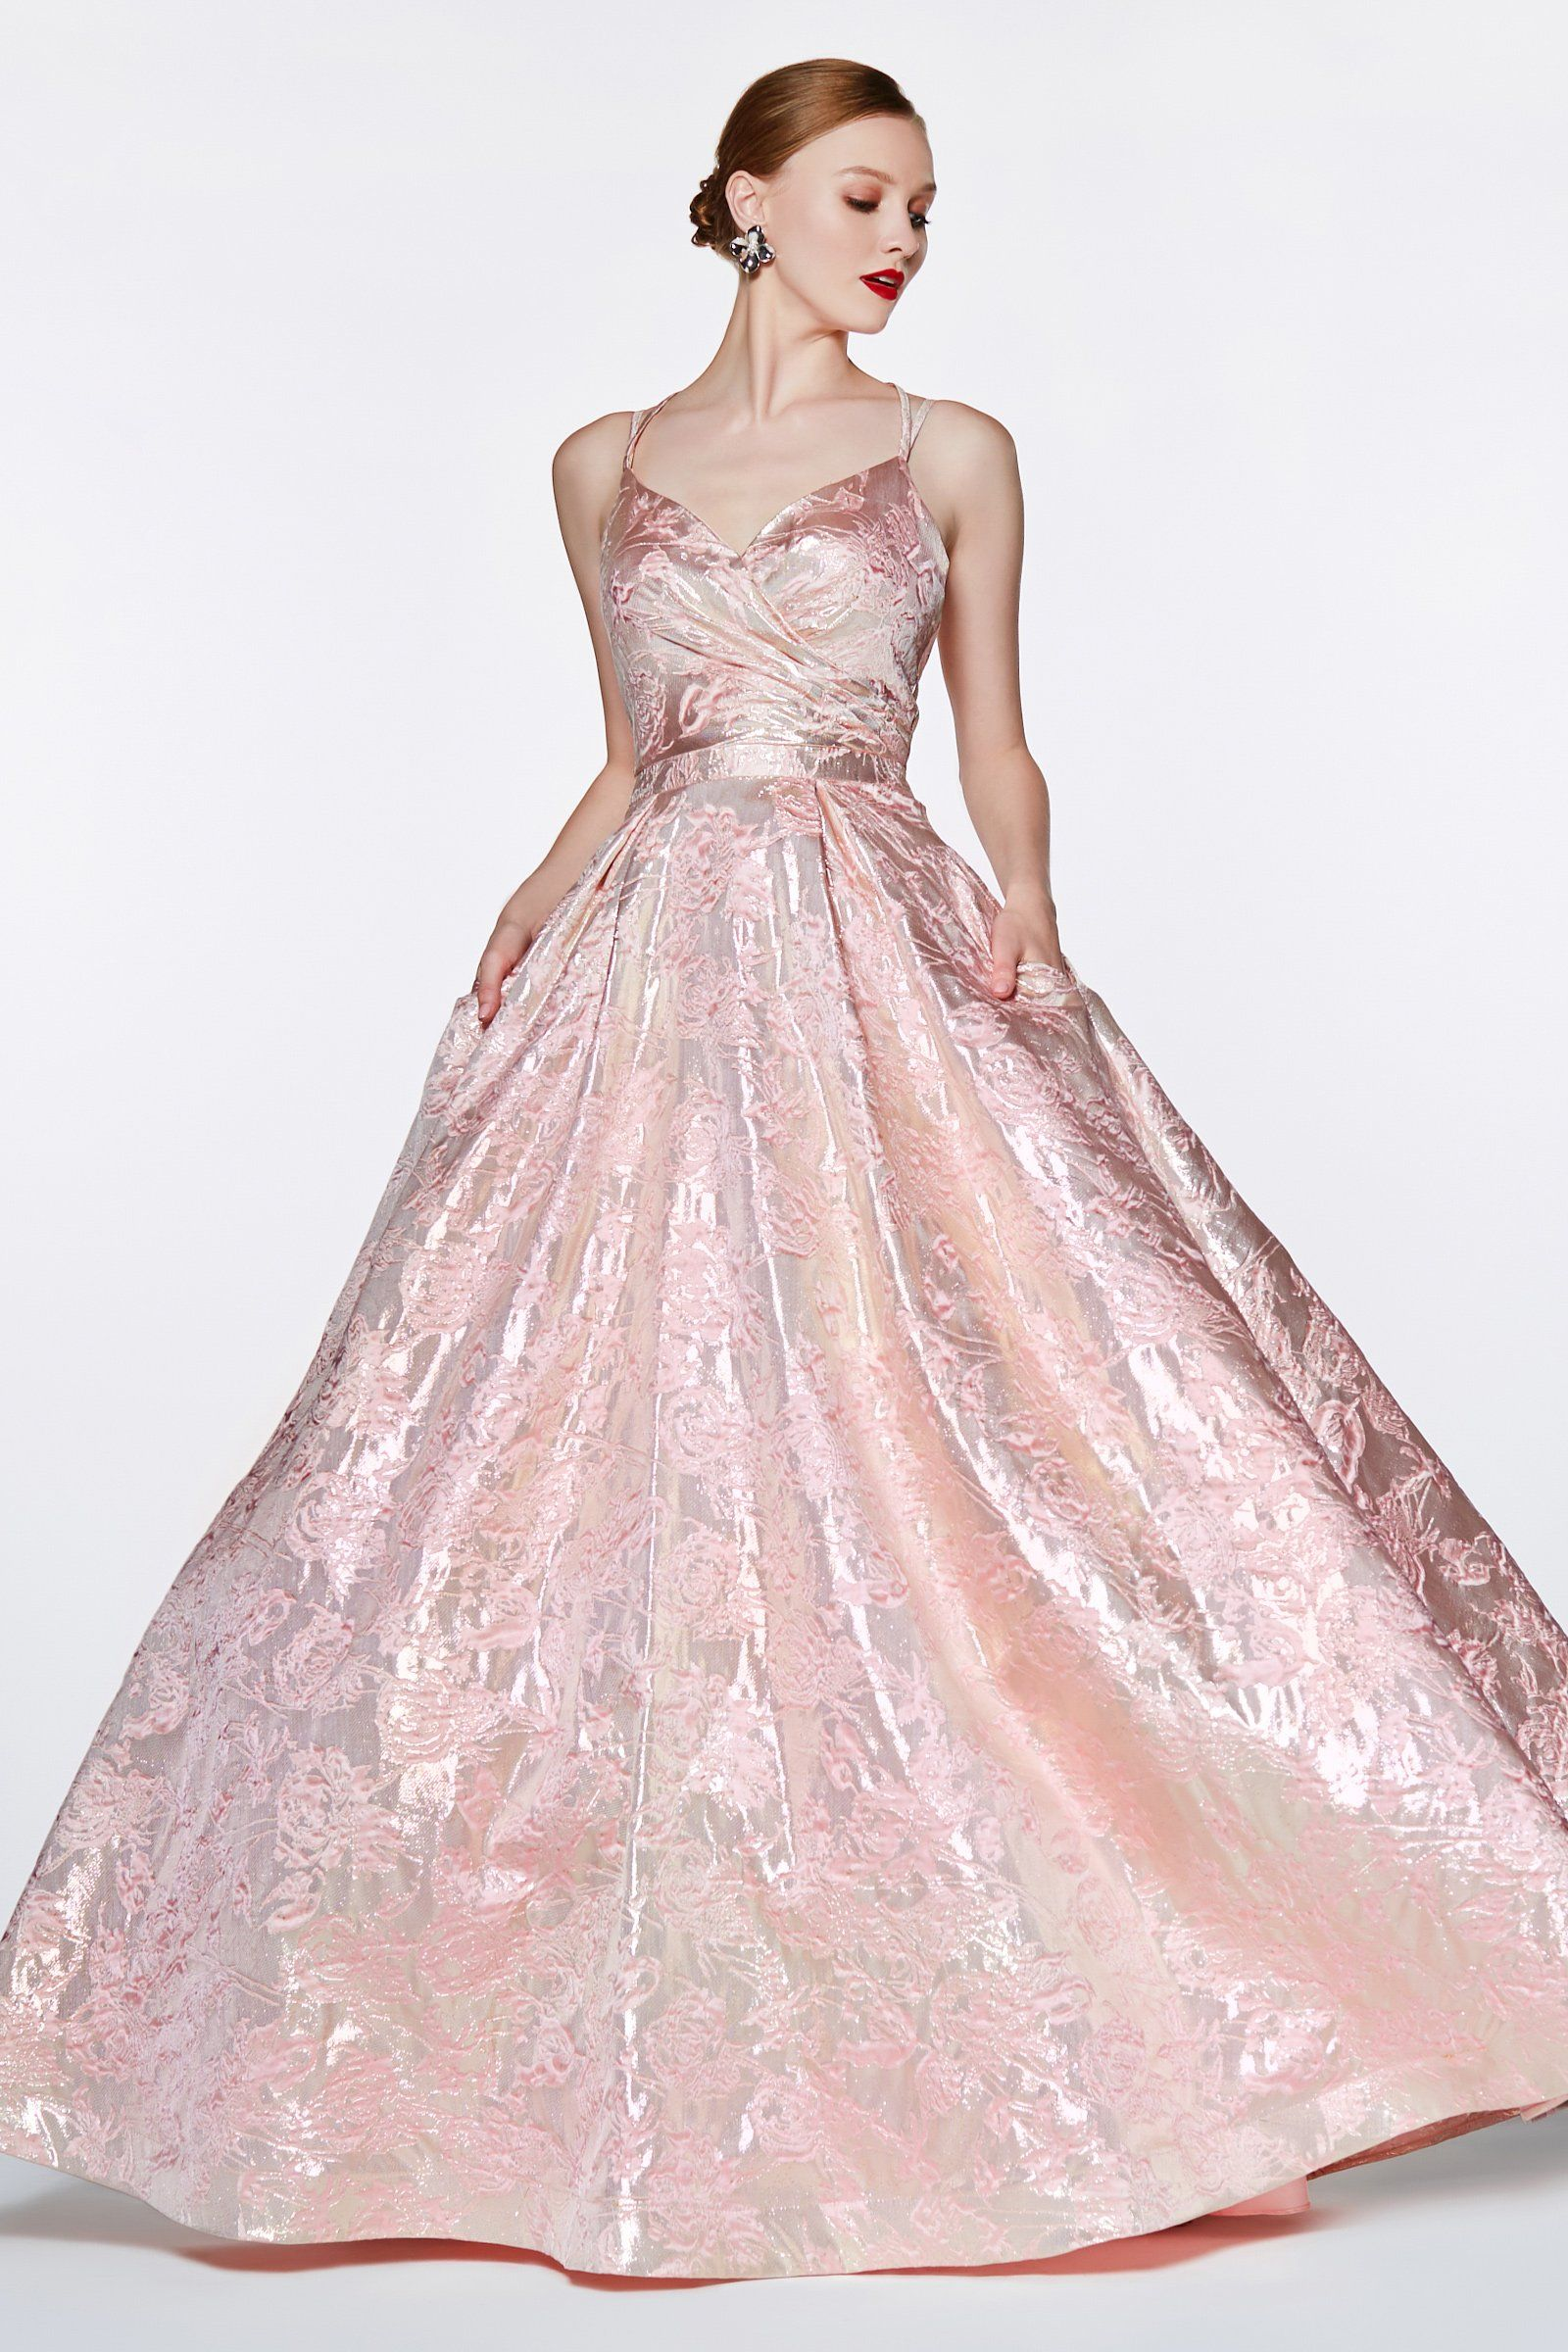 Pin on Beautiful Gowns, Evening Dresses